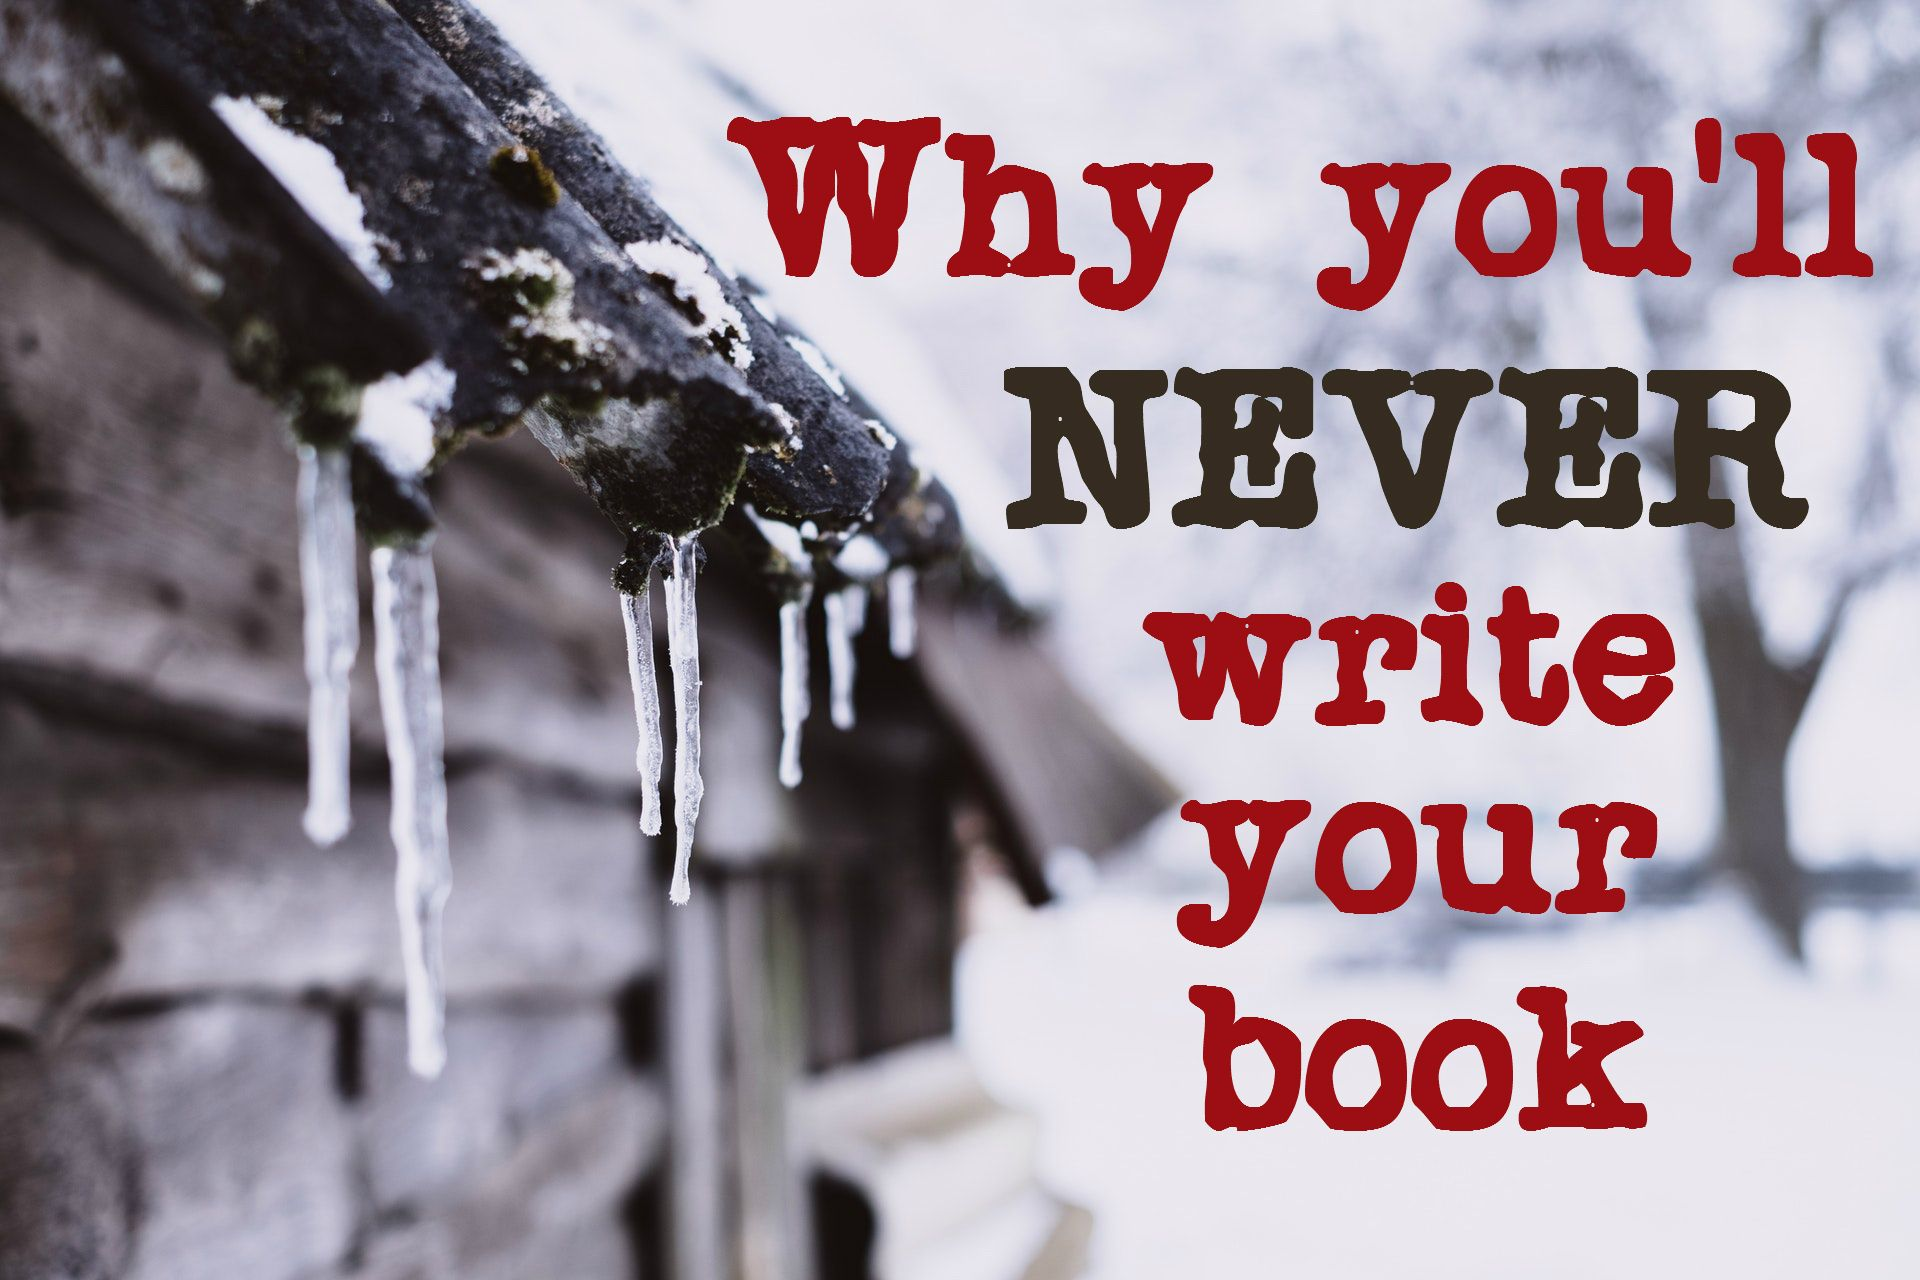 It's a cold day for writers